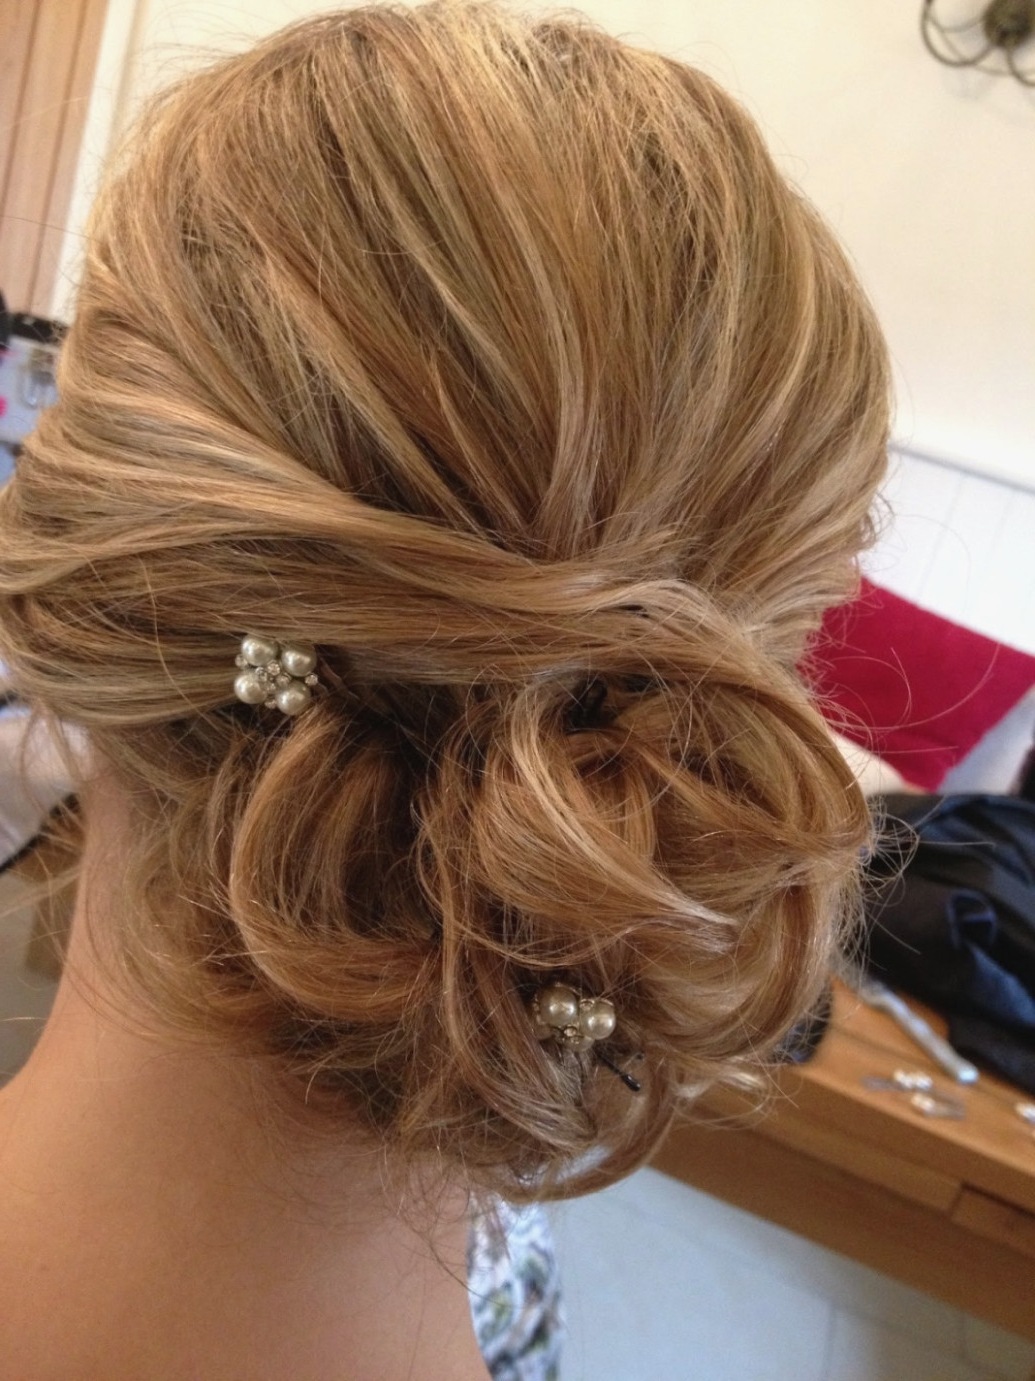 The Biggest Contribution Of Side Bun Wedding Hairstyles To Throughout Widely Used Wedding Hairstyles For Long Hair With Side Bun (View 3 of 15)